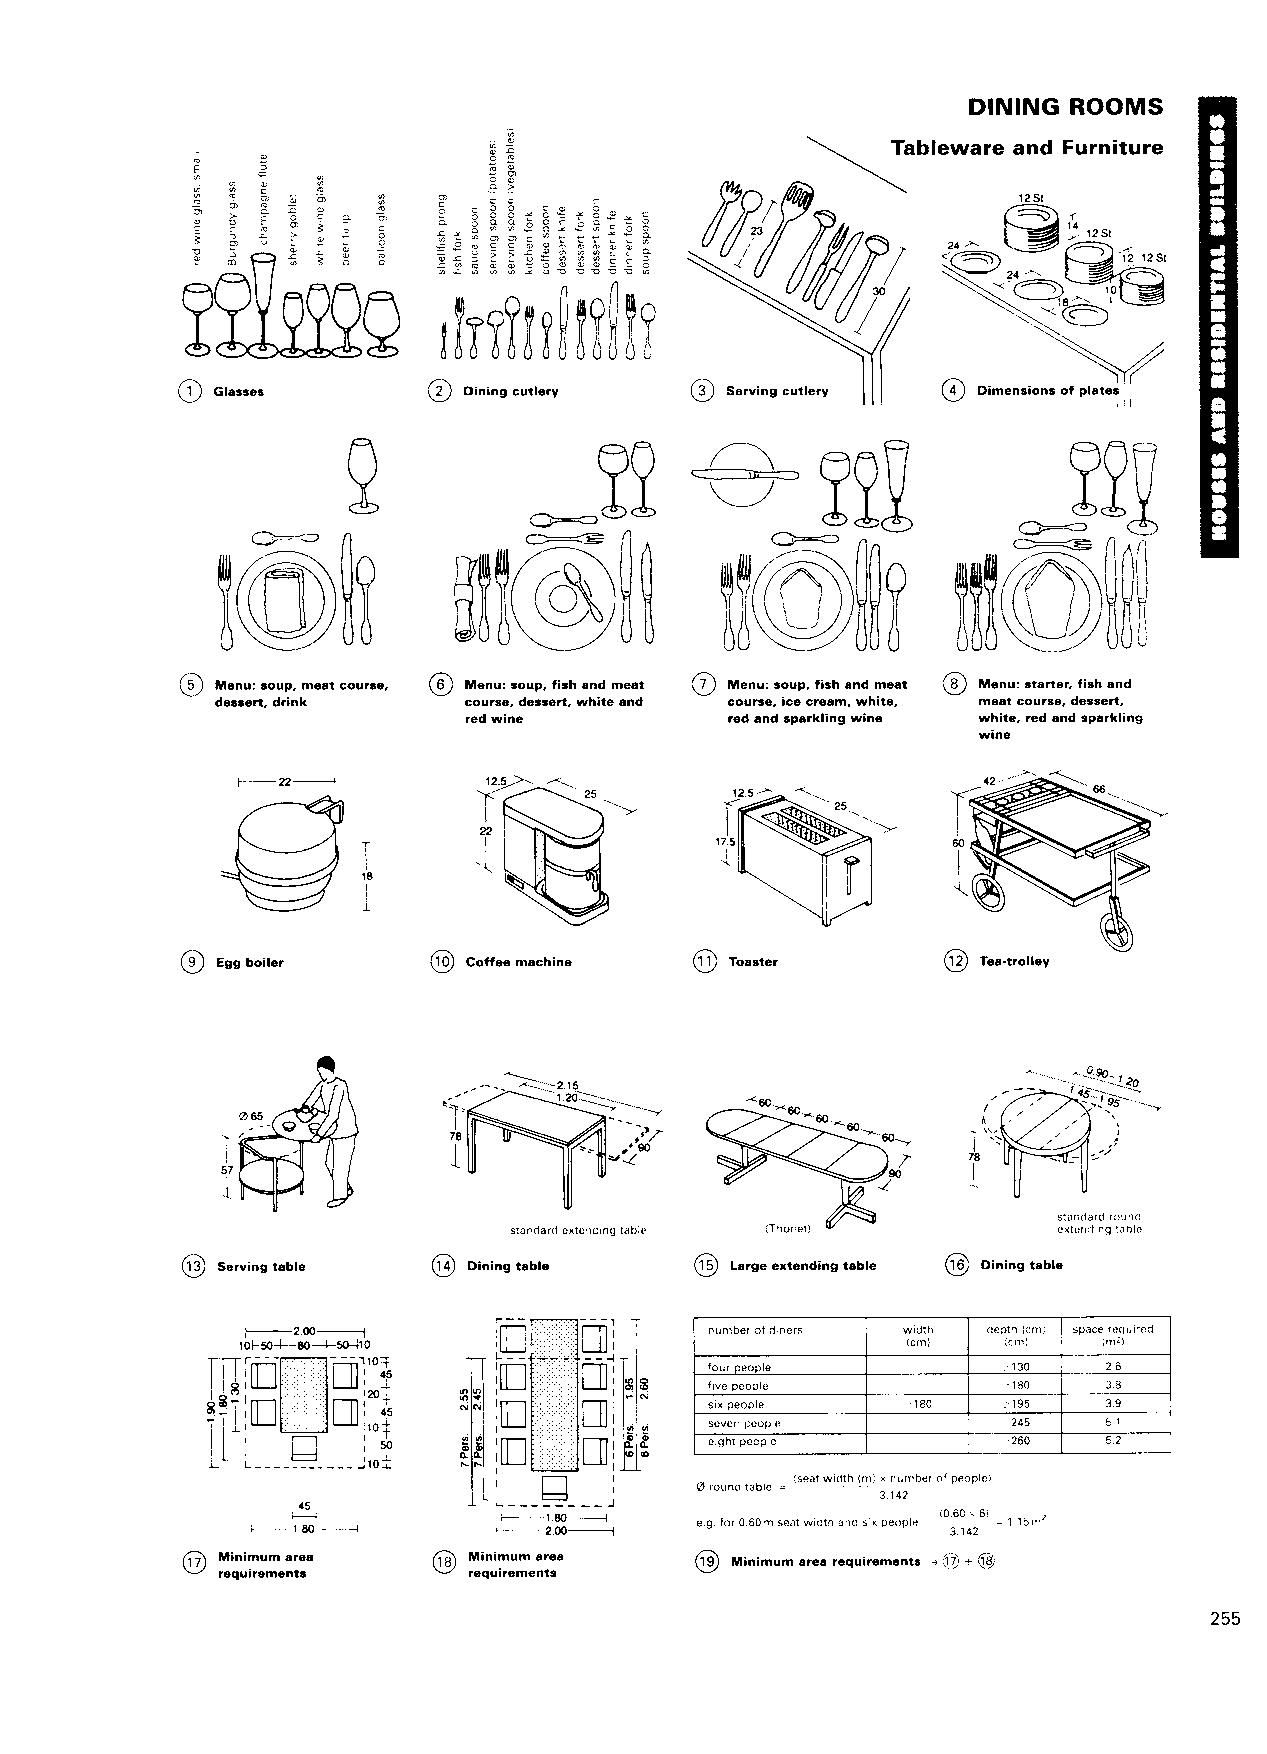 Classroom Design Guide ~ Neufert architects data ed kitchens pinterest